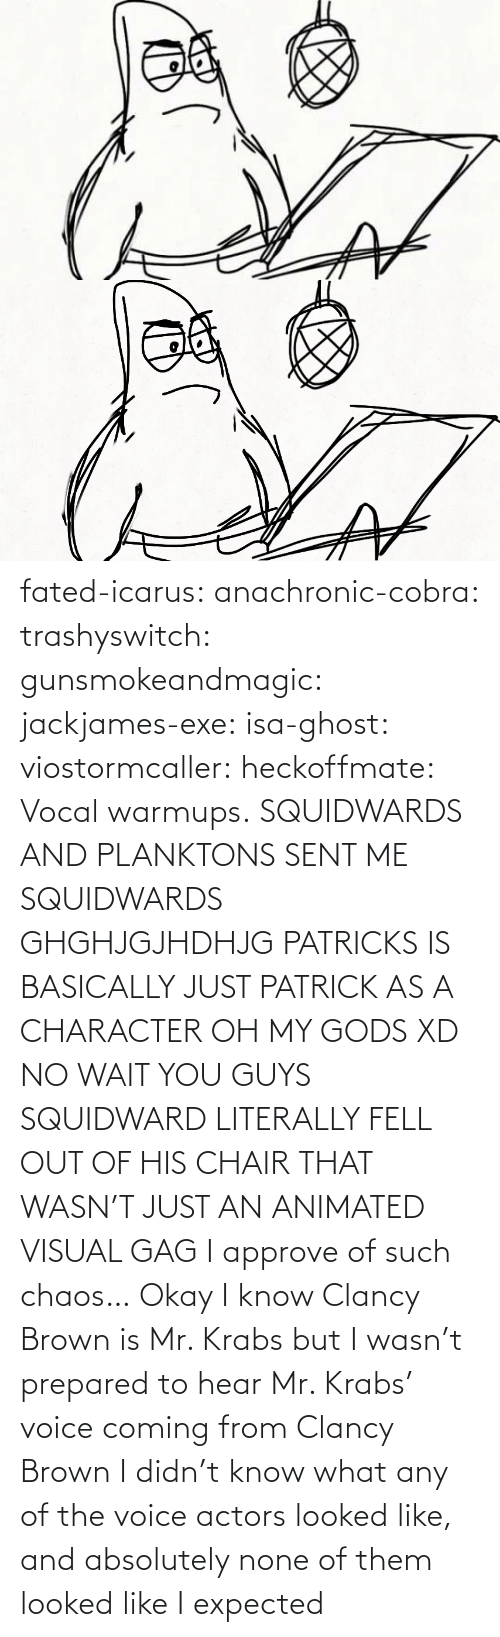 Chair: fated-icarus:  anachronic-cobra: trashyswitch:  gunsmokeandmagic:  jackjames-exe:  isa-ghost:   viostormcaller:  heckoffmate: Vocal warmups. SQUIDWARDS AND PLANKTONS SENT ME  SQUIDWARDS GHGHJGJHDHJG   PATRICKS IS BASICALLY JUST PATRICK AS A CHARACTER OH MY GODS XD   NO WAIT YOU GUYS SQUIDWARD LITERALLY FELL OUT OF HIS CHAIR THAT WASN'T JUST AN ANIMATED VISUAL GAG    I approve of such chaos…    Okay I know Clancy Brown is Mr. Krabs but I wasn't prepared to hear Mr. Krabs' voice coming from Clancy Brown    I didn't know what any of the voice actors looked like, and absolutely none of them looked like I expected